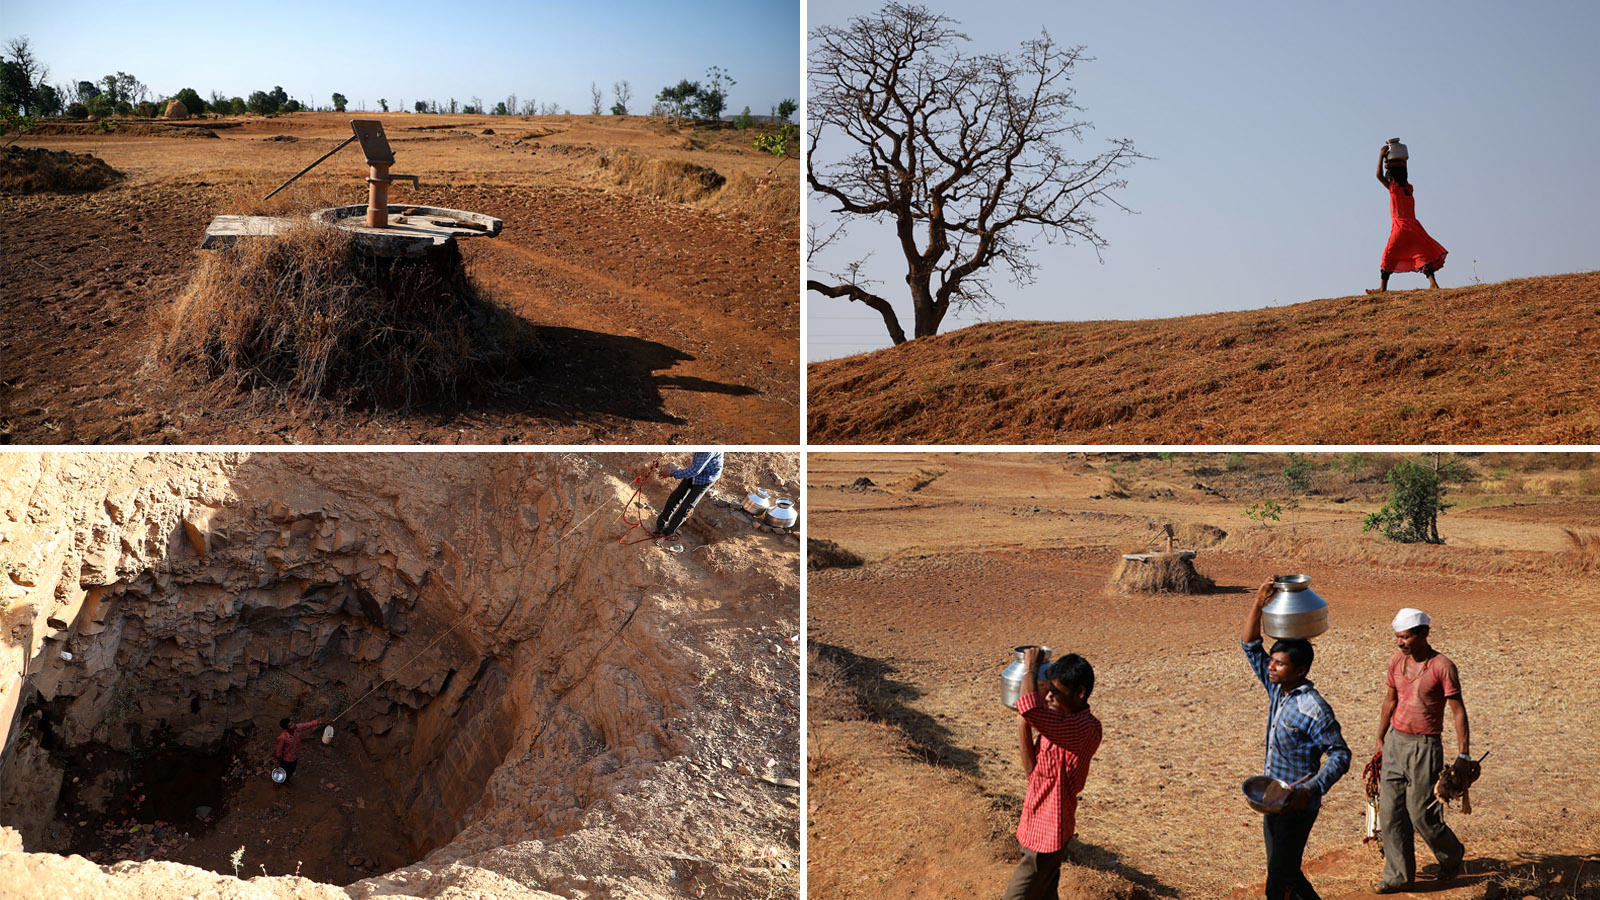 Located on parched hills, the villages - Mahismal, Galwad, Shirish pada and Moranda - suffer debilitating water shortages even though they fall in a rain rich area